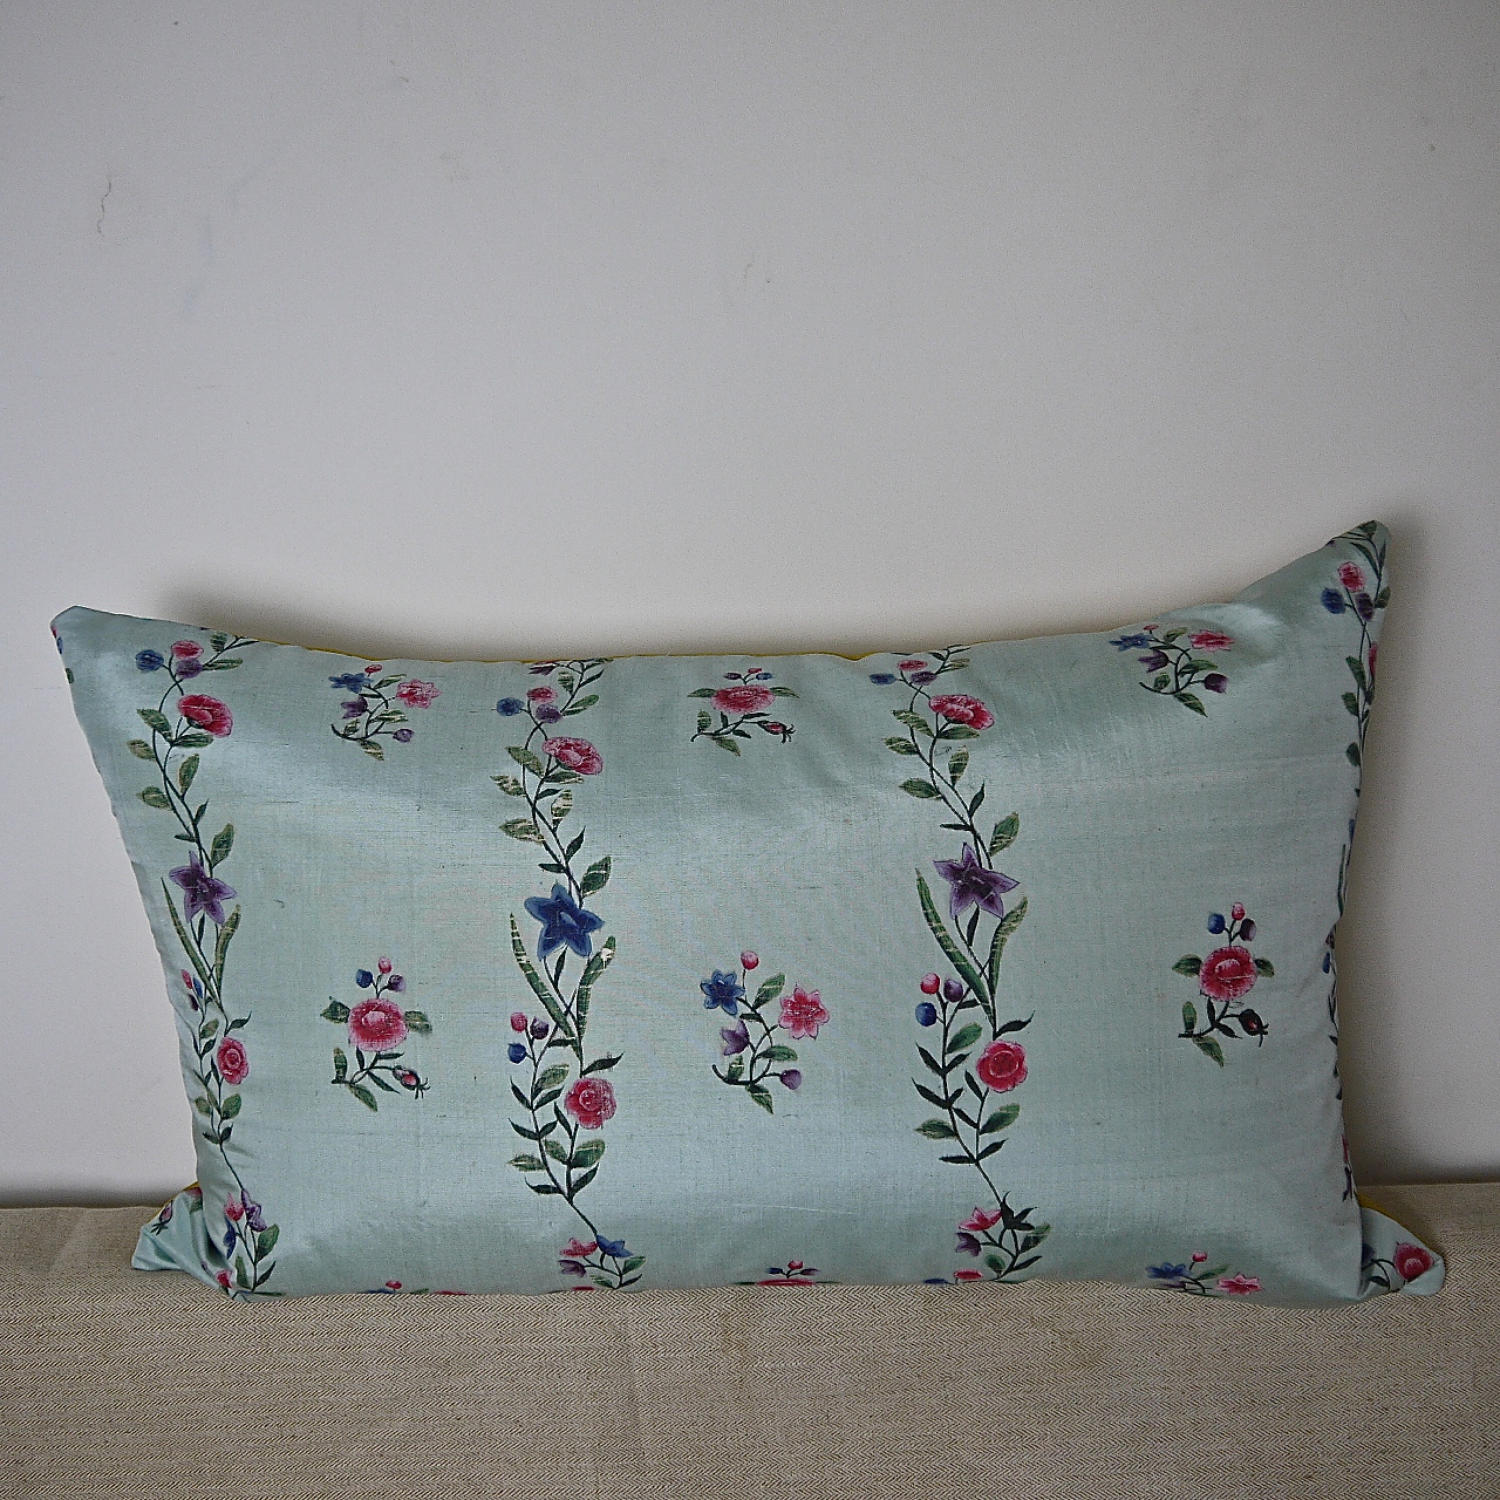 18th century Chinese hand-painted flowers cushion